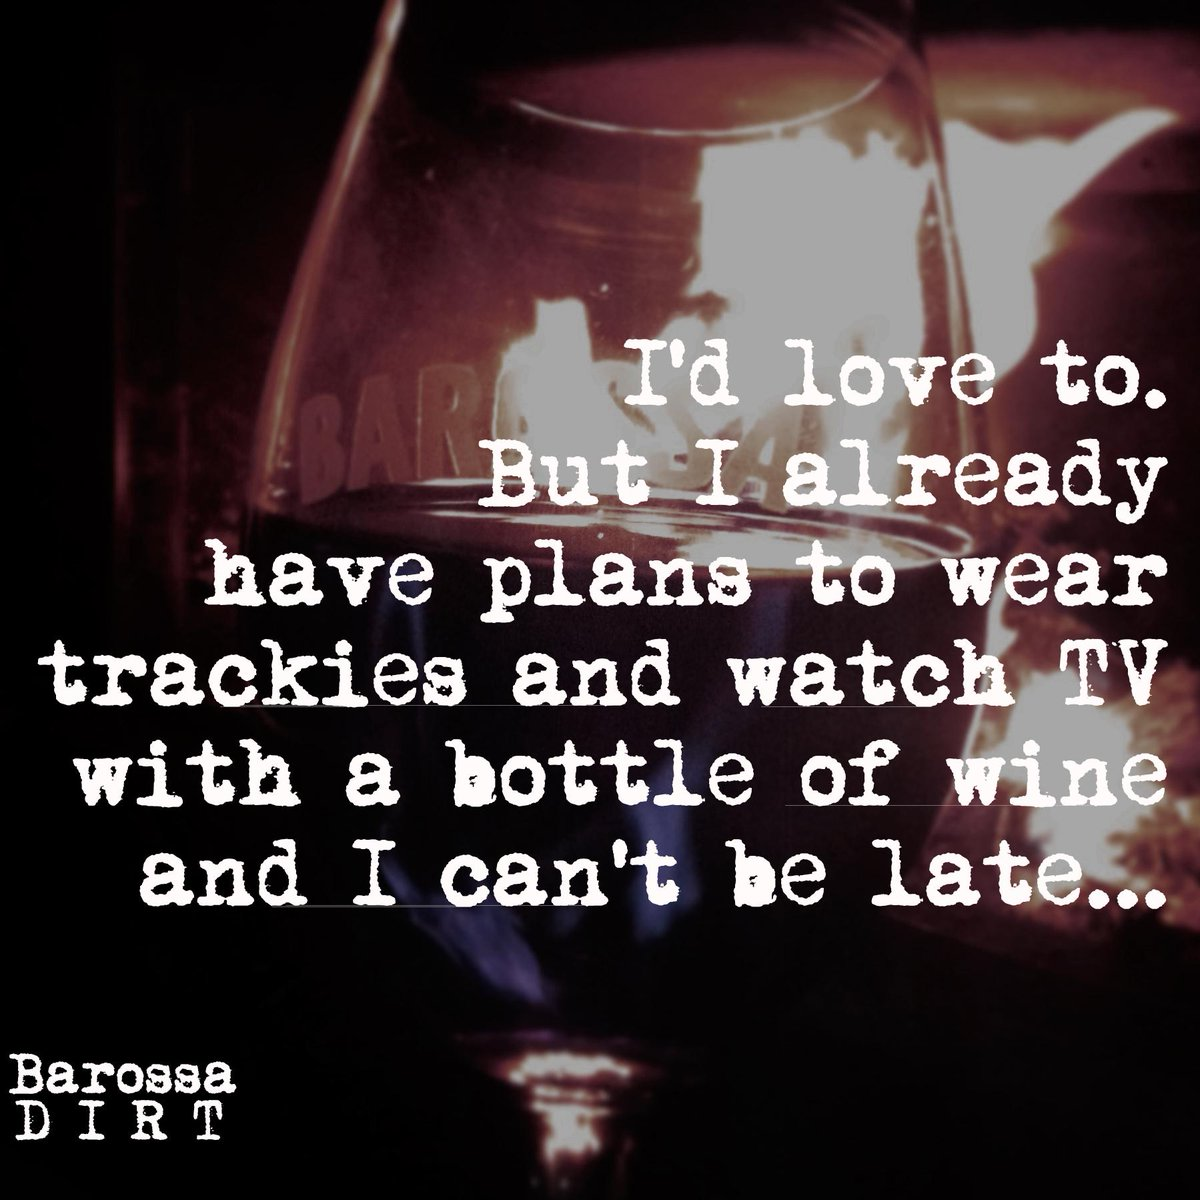 How are your weekend plans? #Wine #Barossa #WineLover http://t.co/L5xRCDcfdh